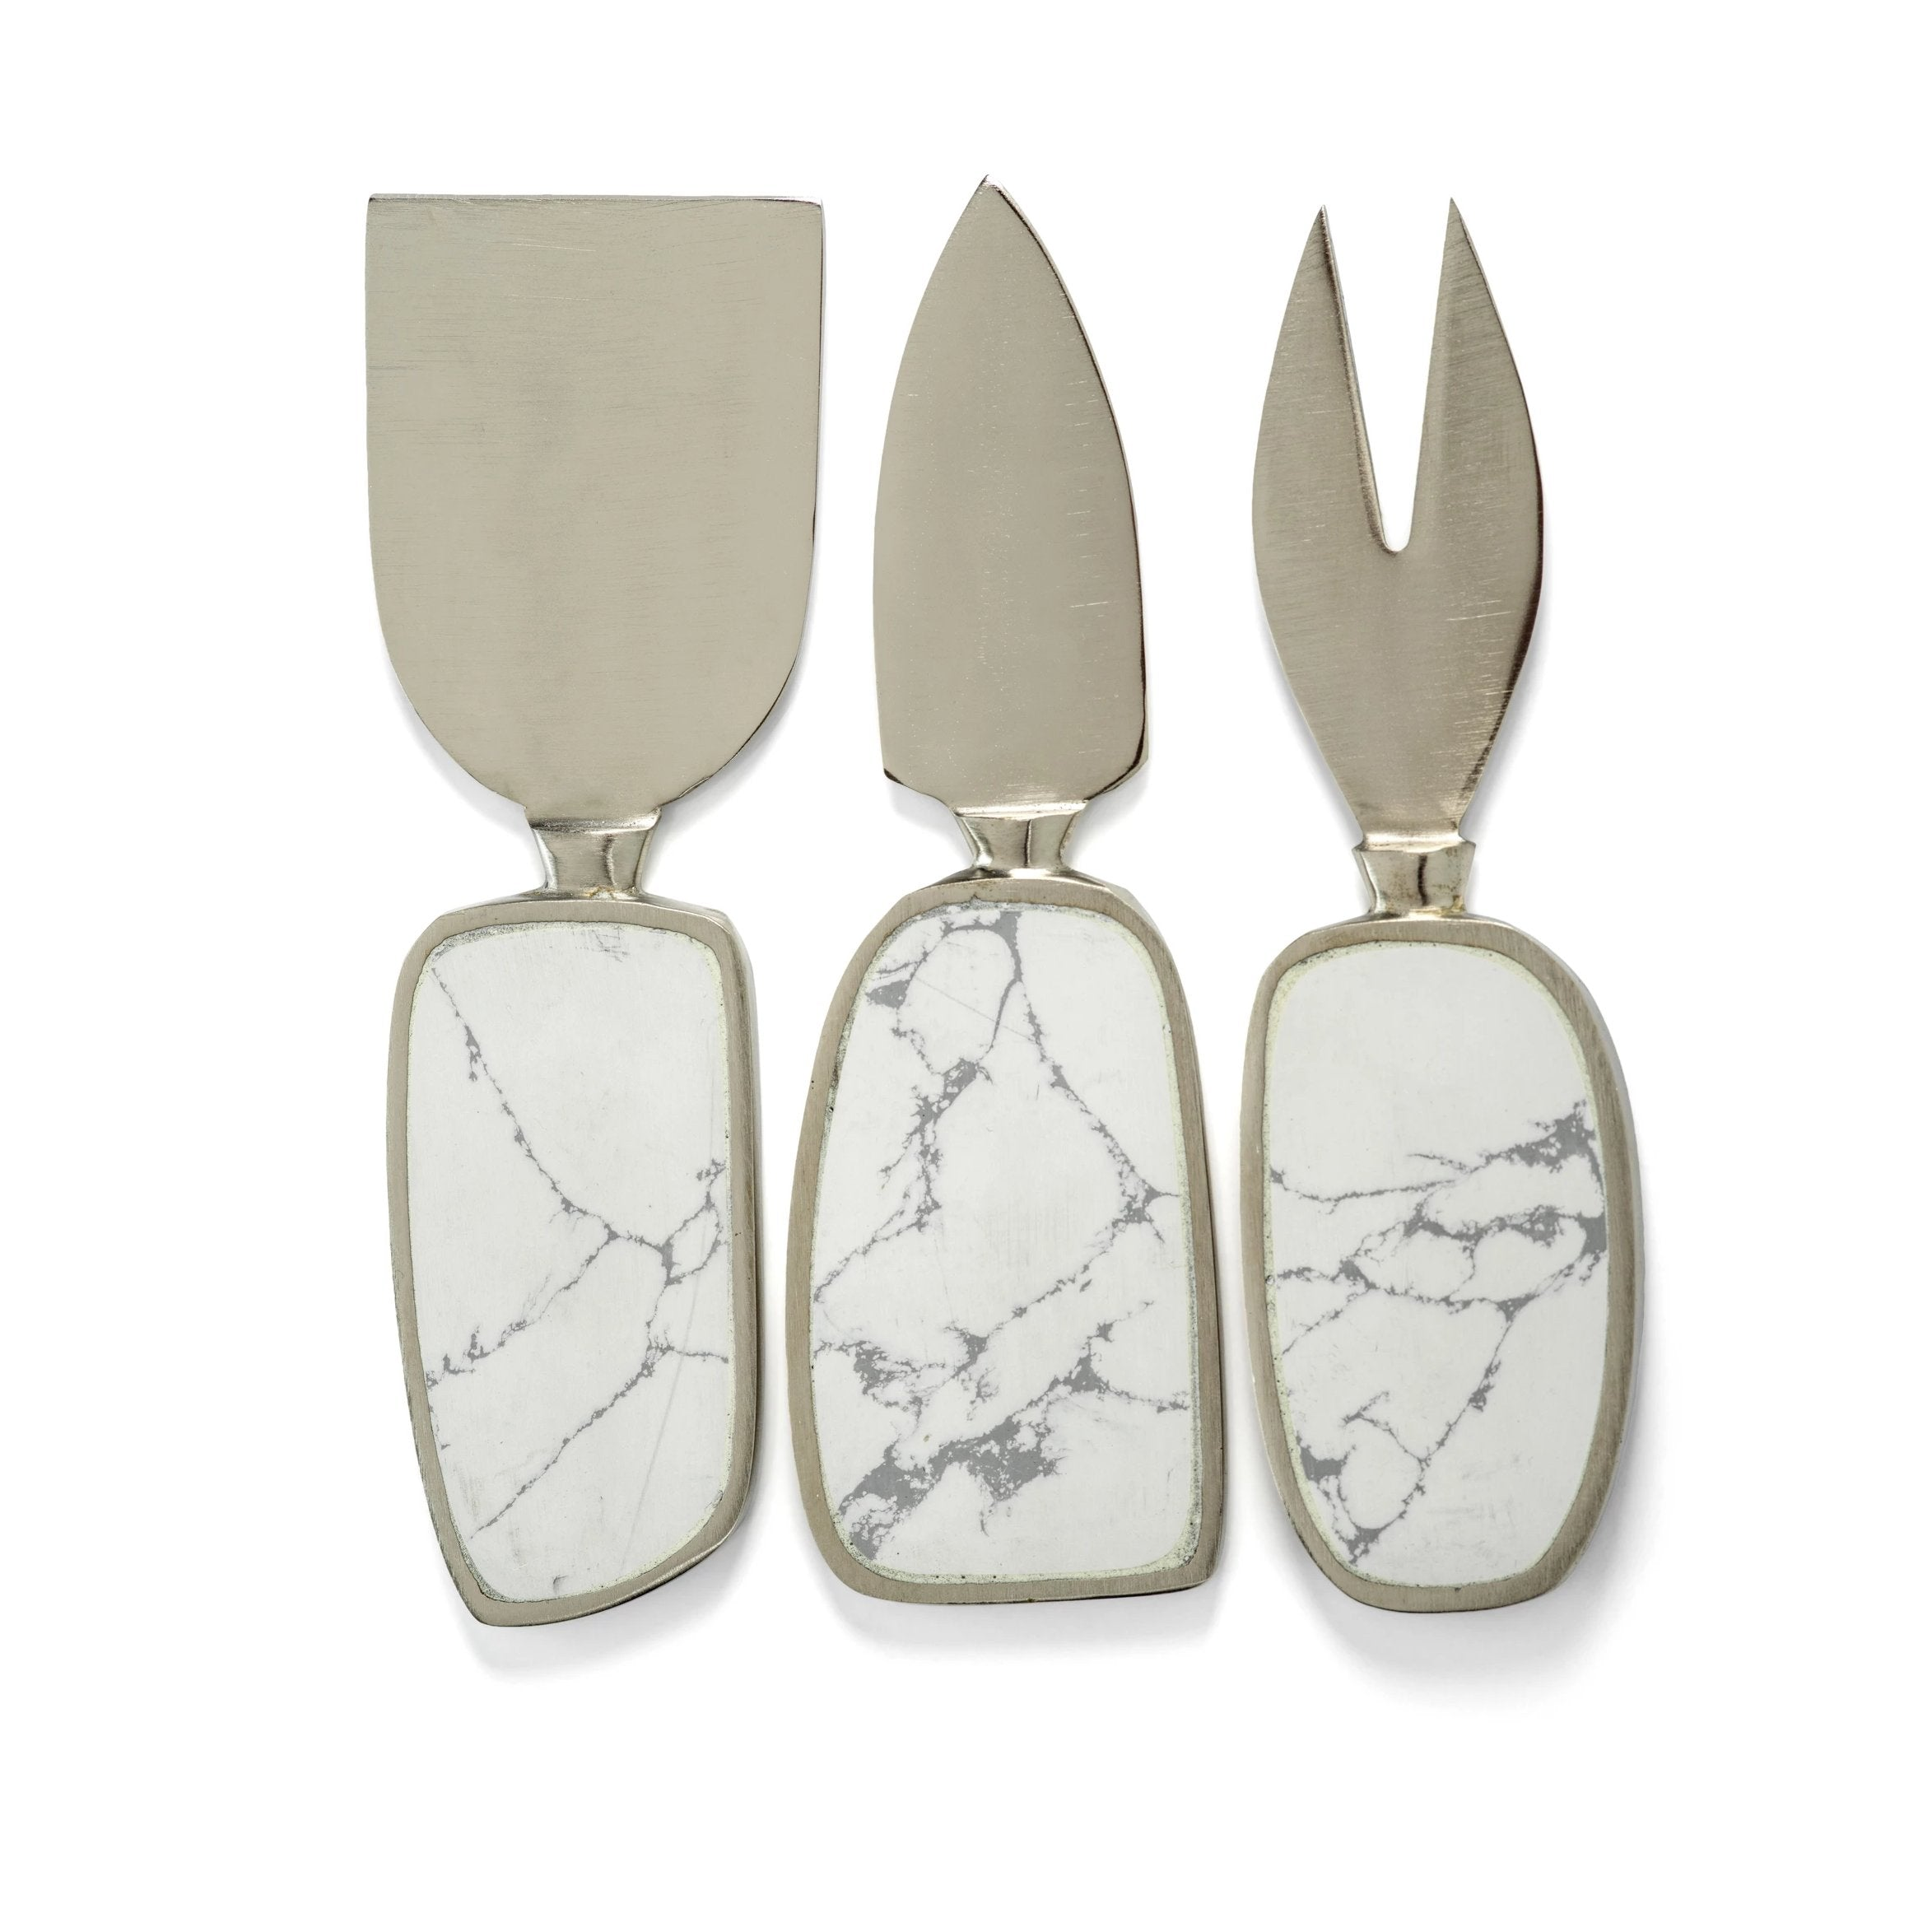 Amalfi Set/3 Cheese Tool Set - White w/ Nickel - CARLYLE AVENUE